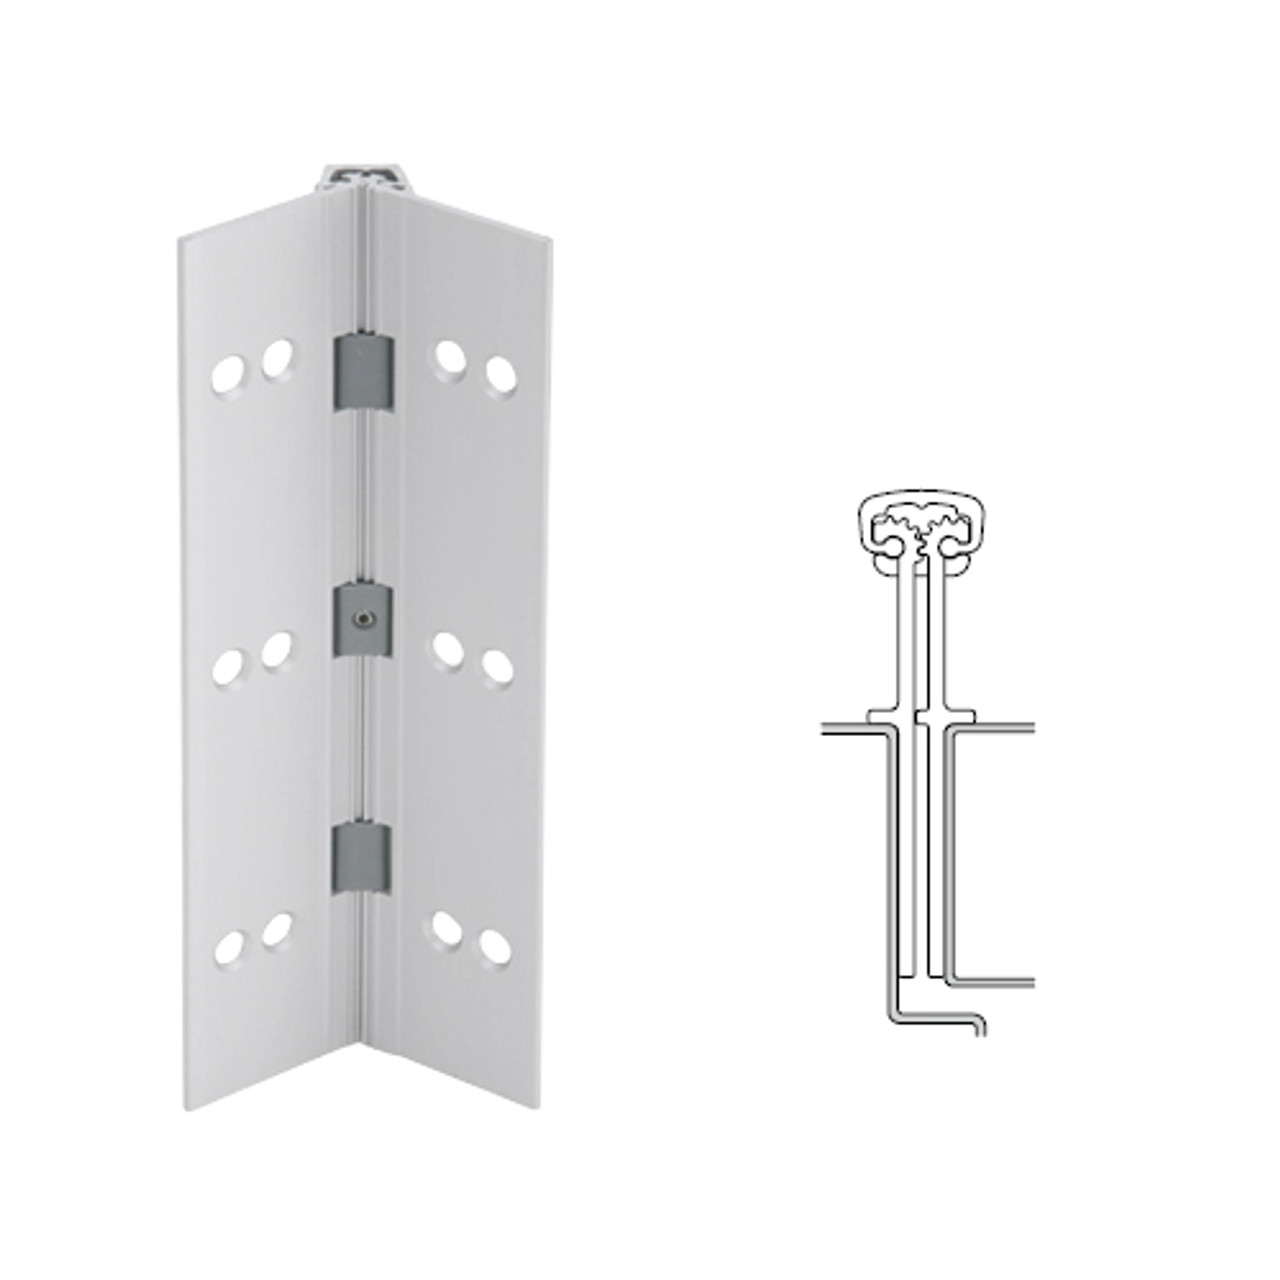 040XY-US28-95-SECWDHM IVES Full Mortise Continuous Geared Hinges with Security Screws - Hex Pin Drive in Satin Aluminum